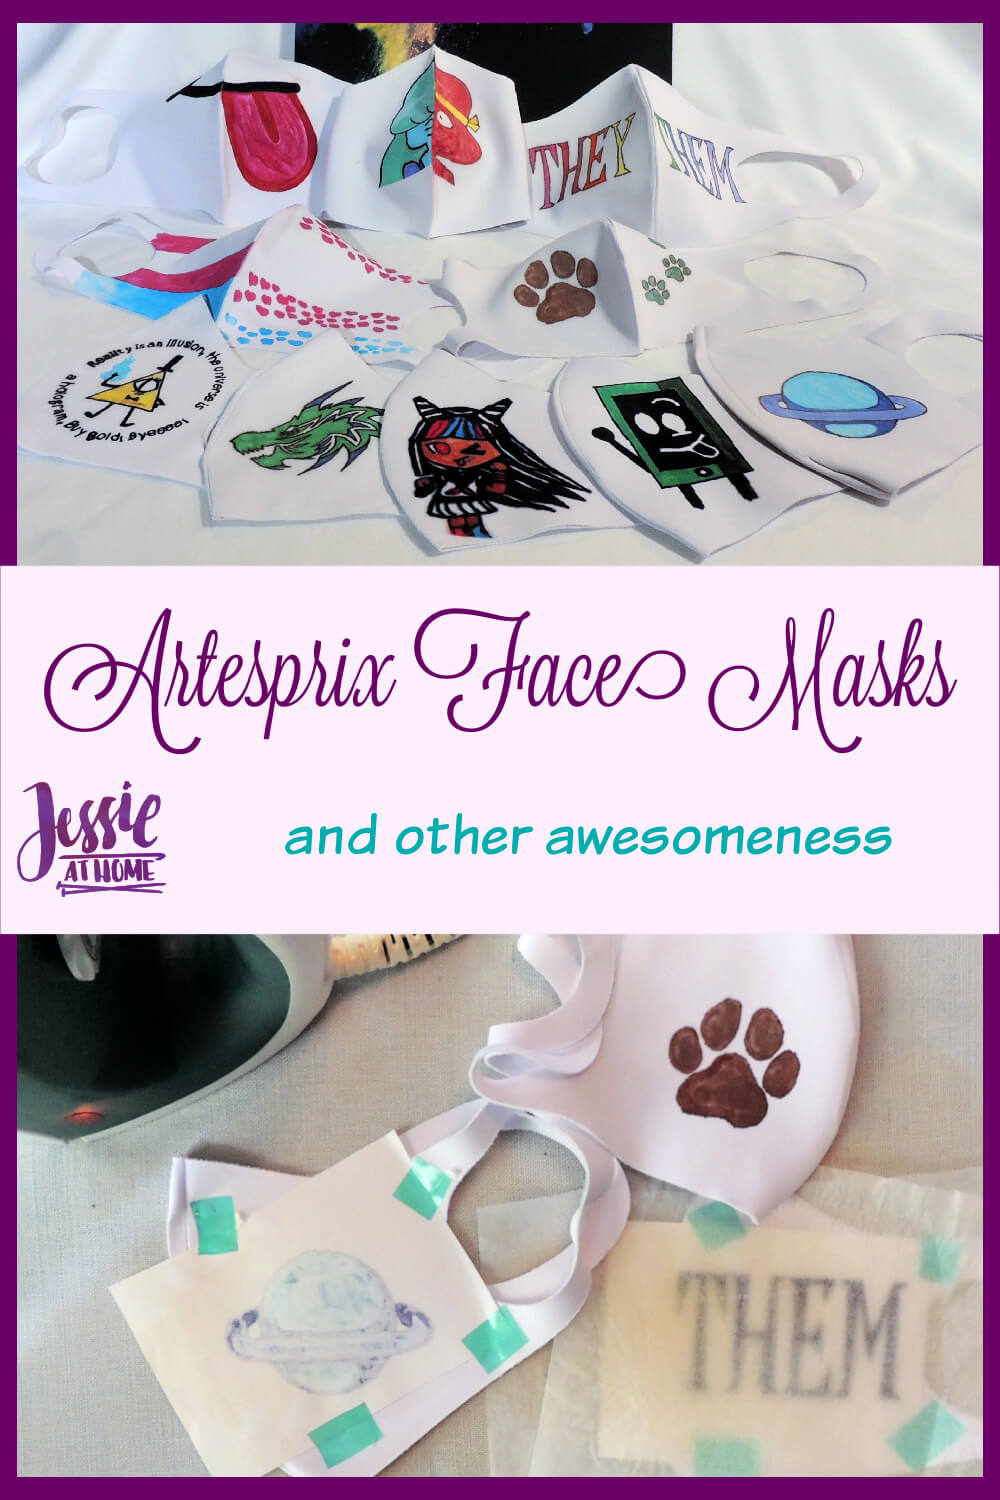 Artesprix Face Masks and Other Awesomeness!